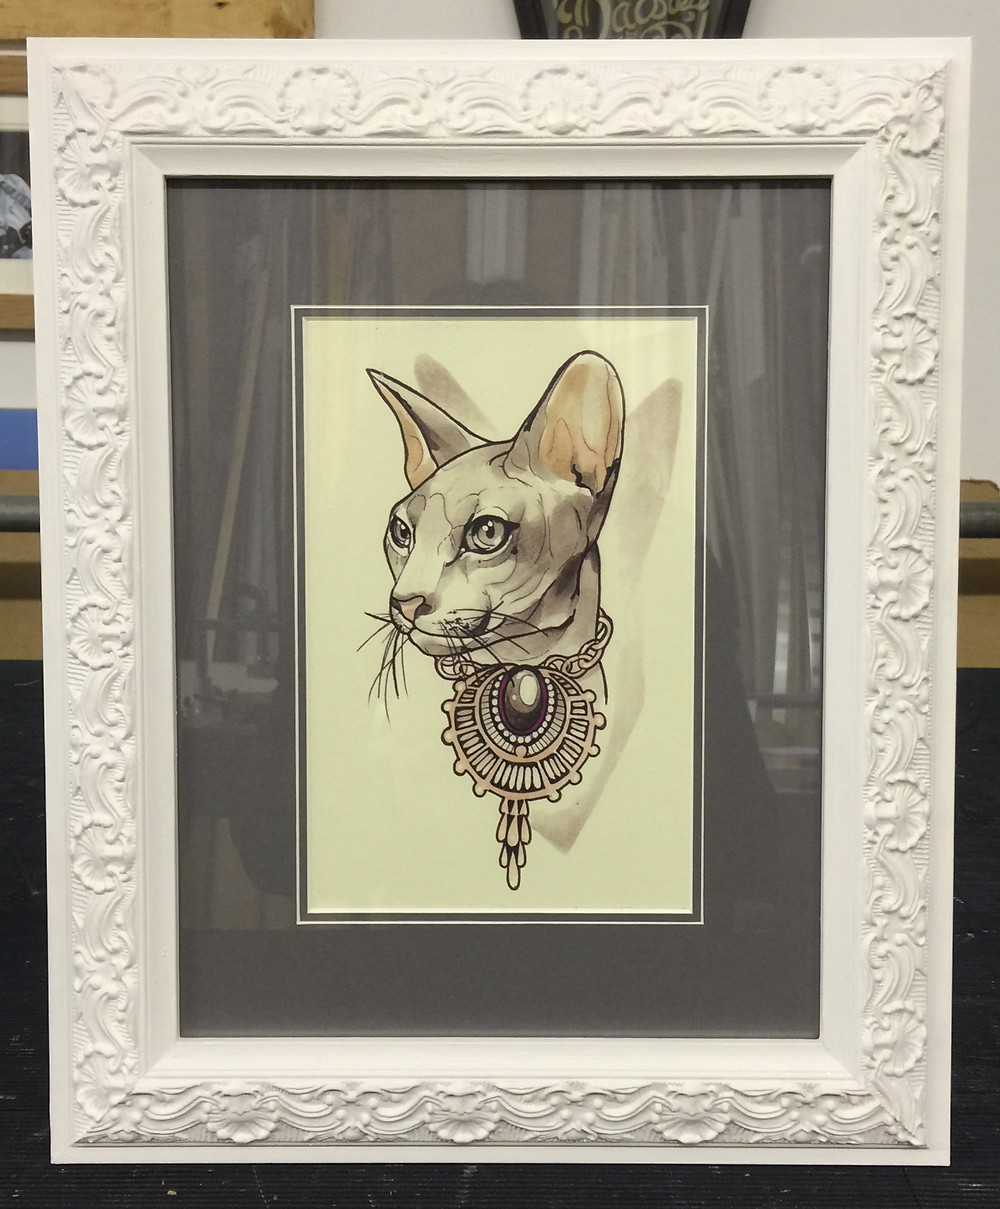 Mounted cat print in ornate style hand painted frame